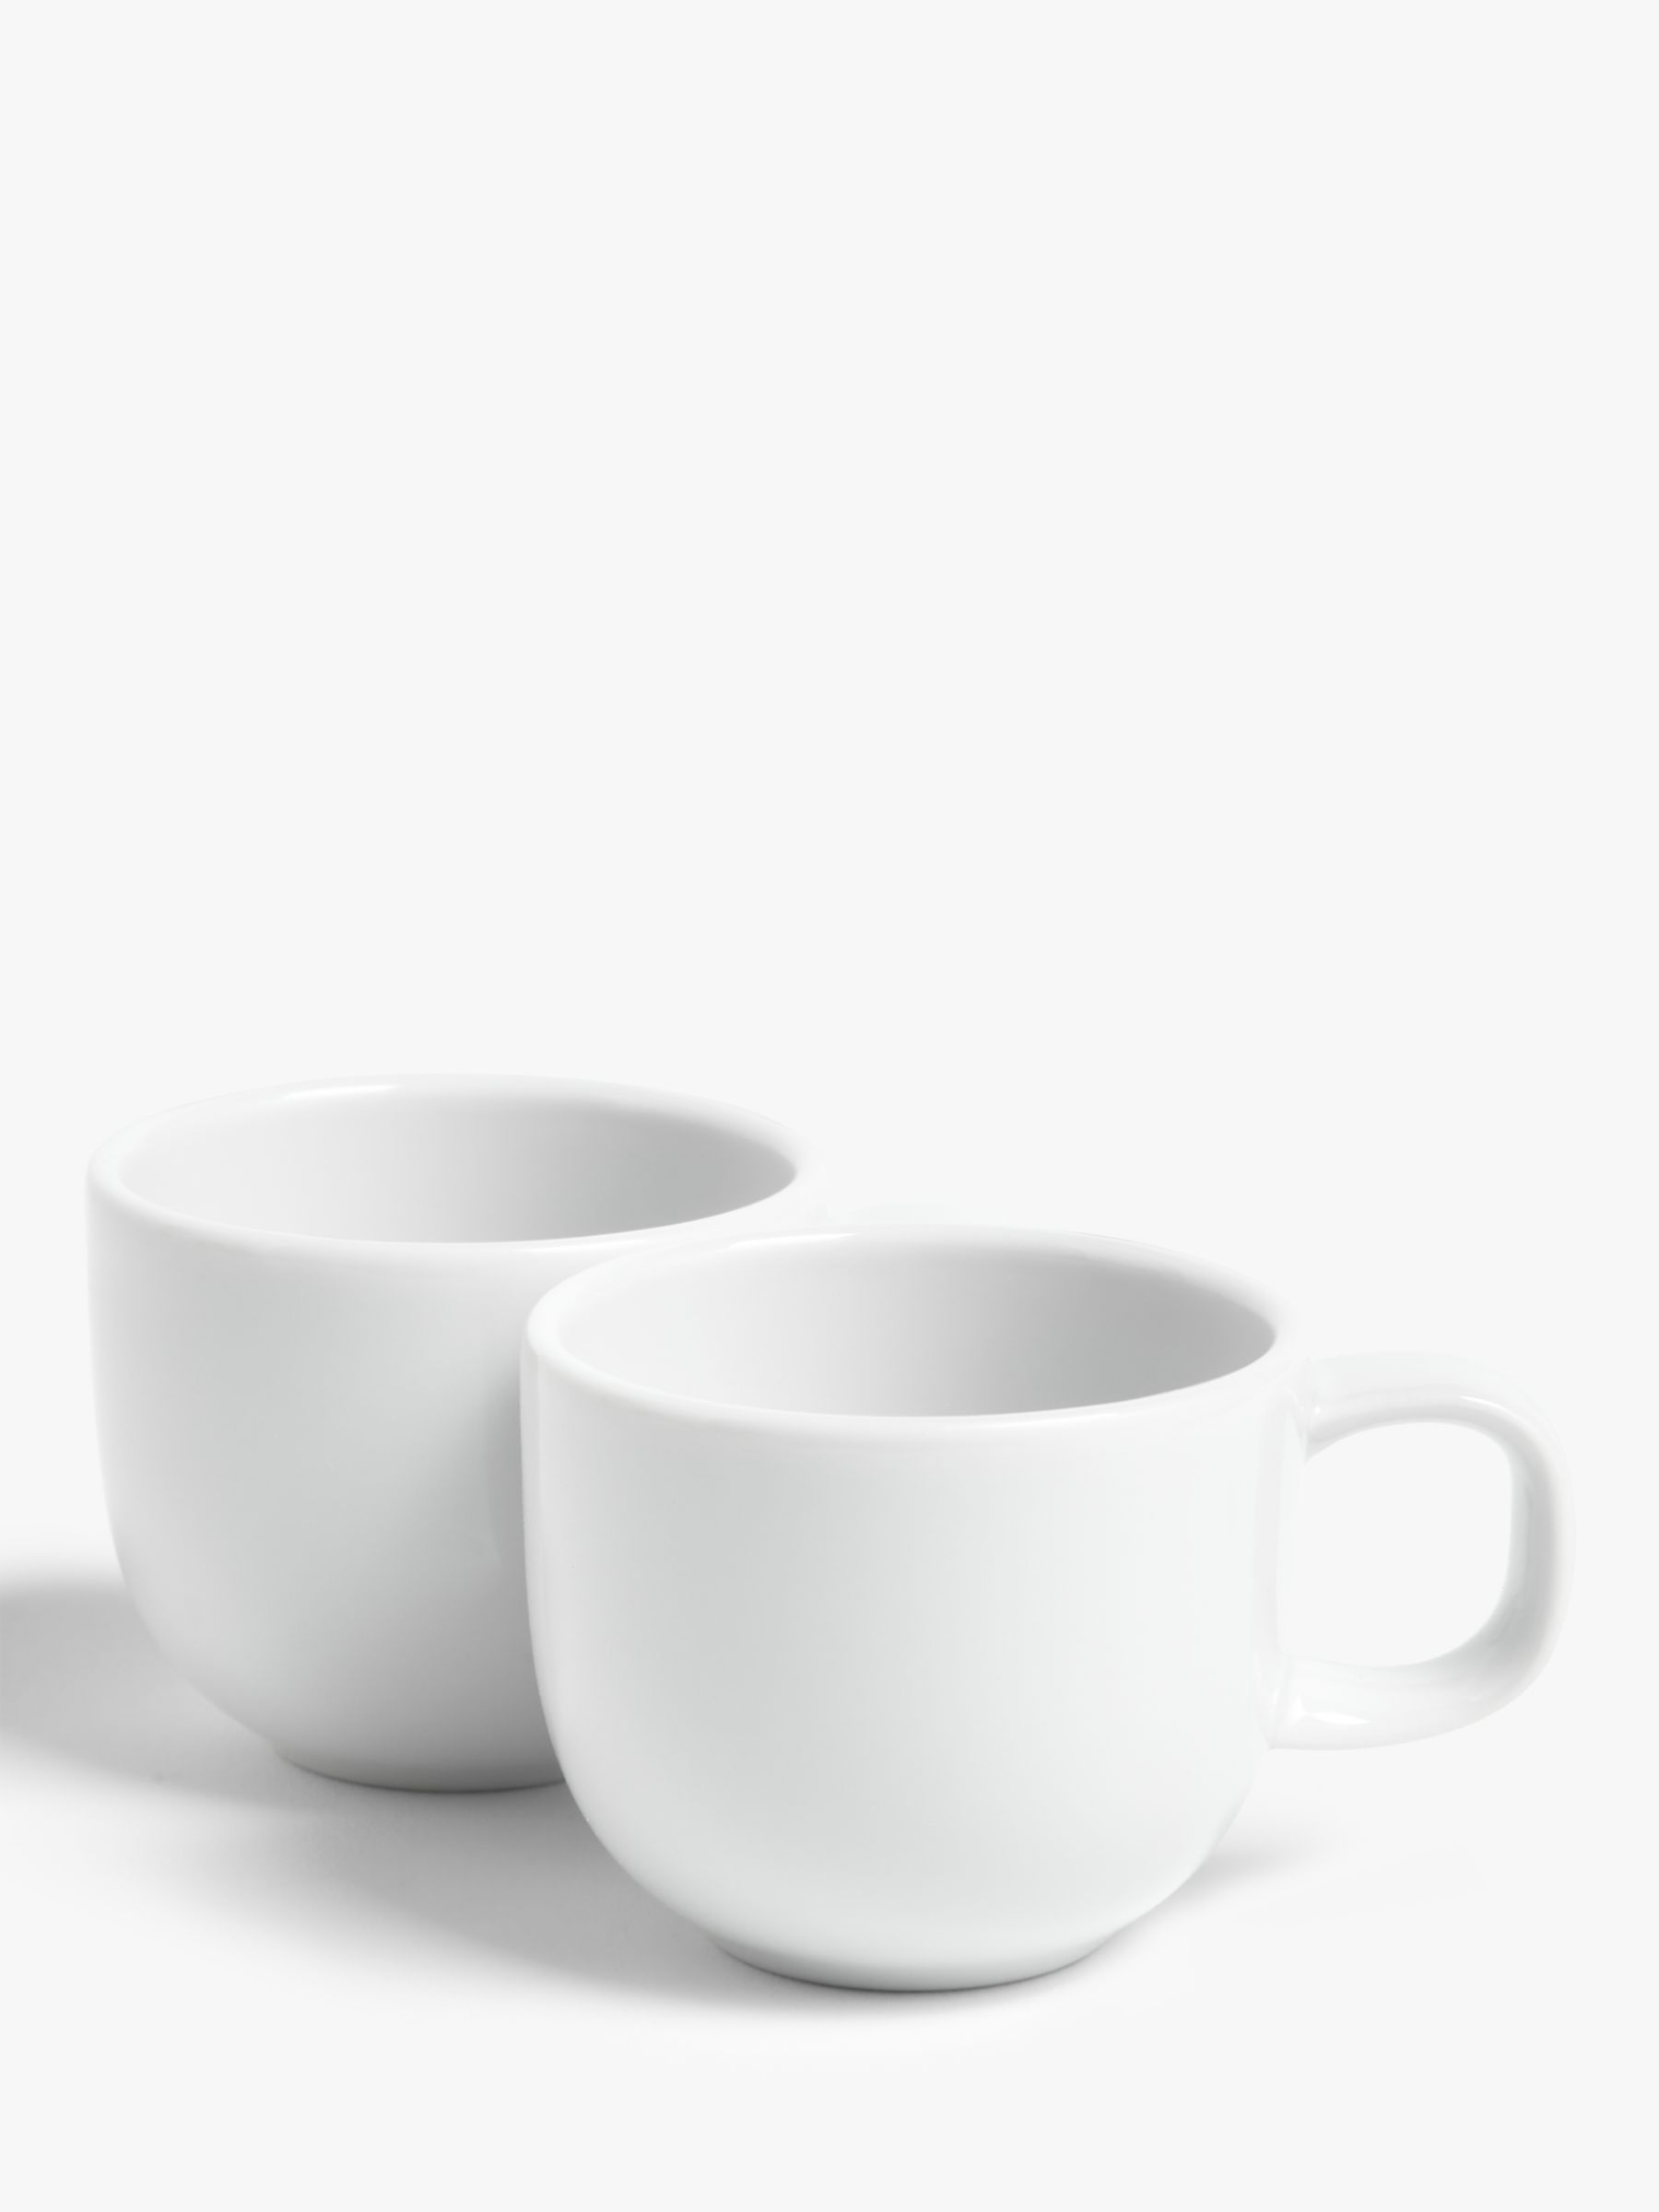 House by John Lewis House by John Lewis Eat Espresso Cups, Set of 2, White, 80ml